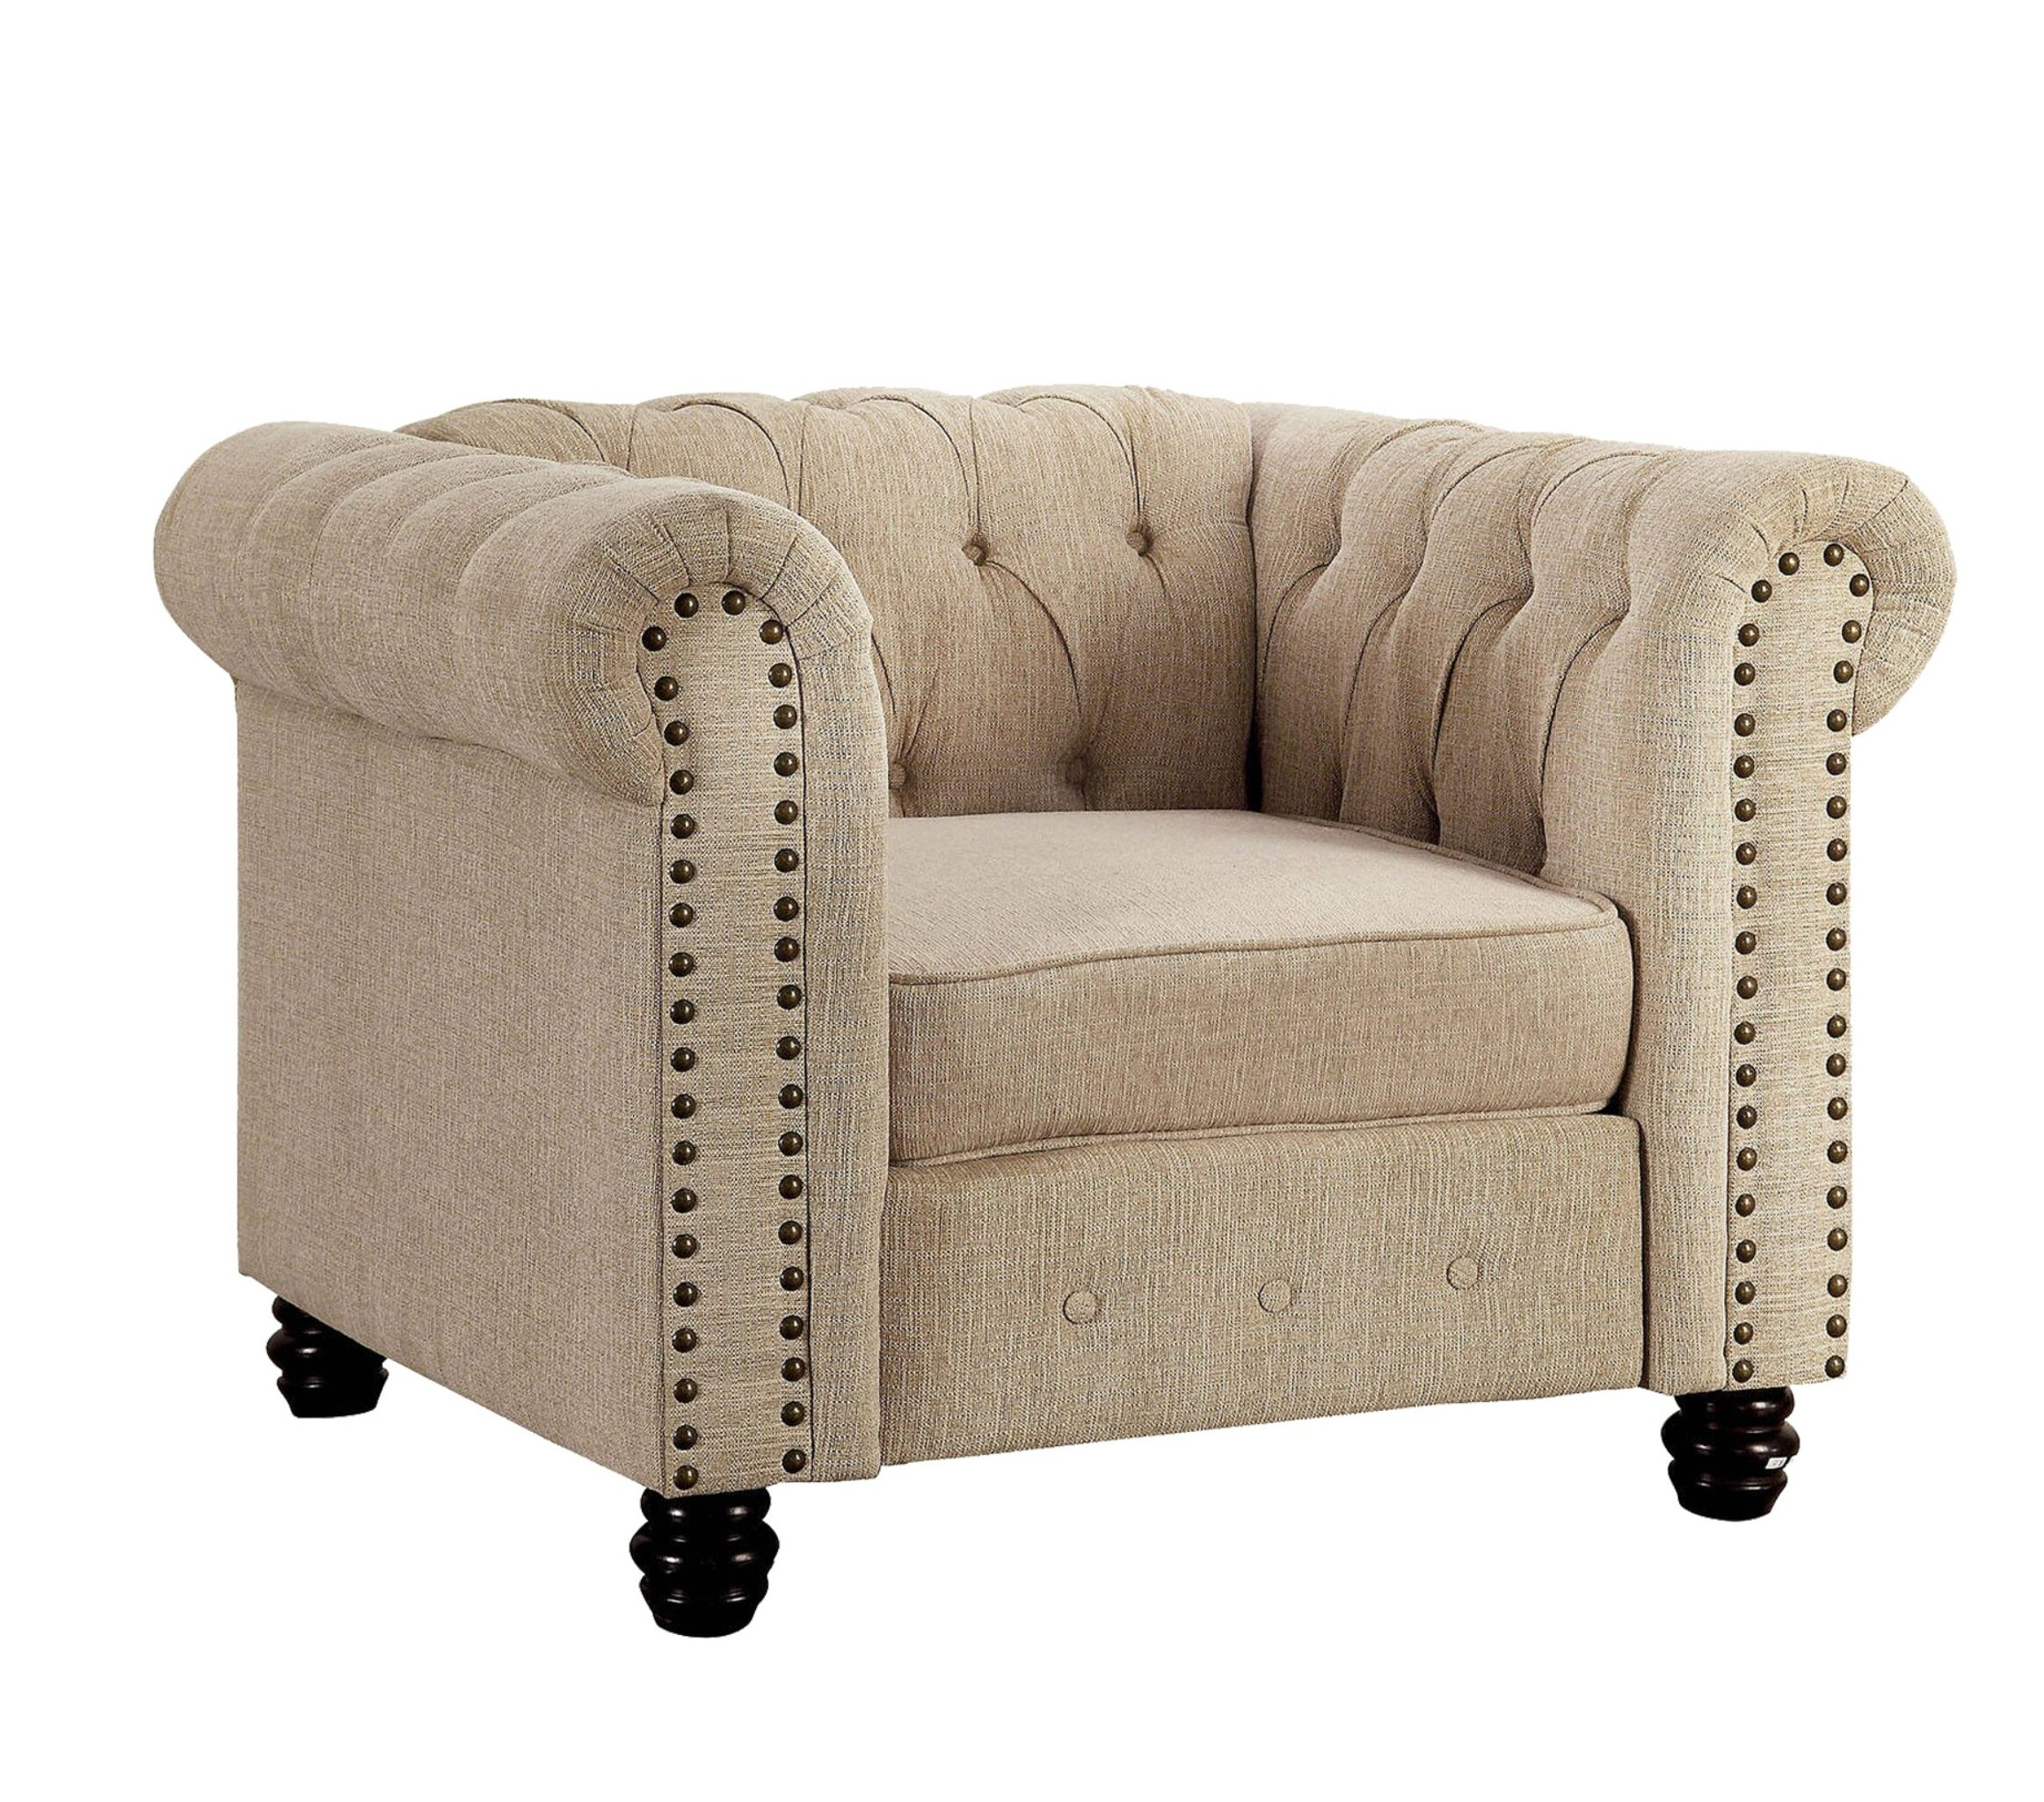 Chesterfield Espresso Wood Accent Chairs You'Ll Love In 2021 Pertaining To Kjellfrid Chesterfield Chairs (View 9 of 15)